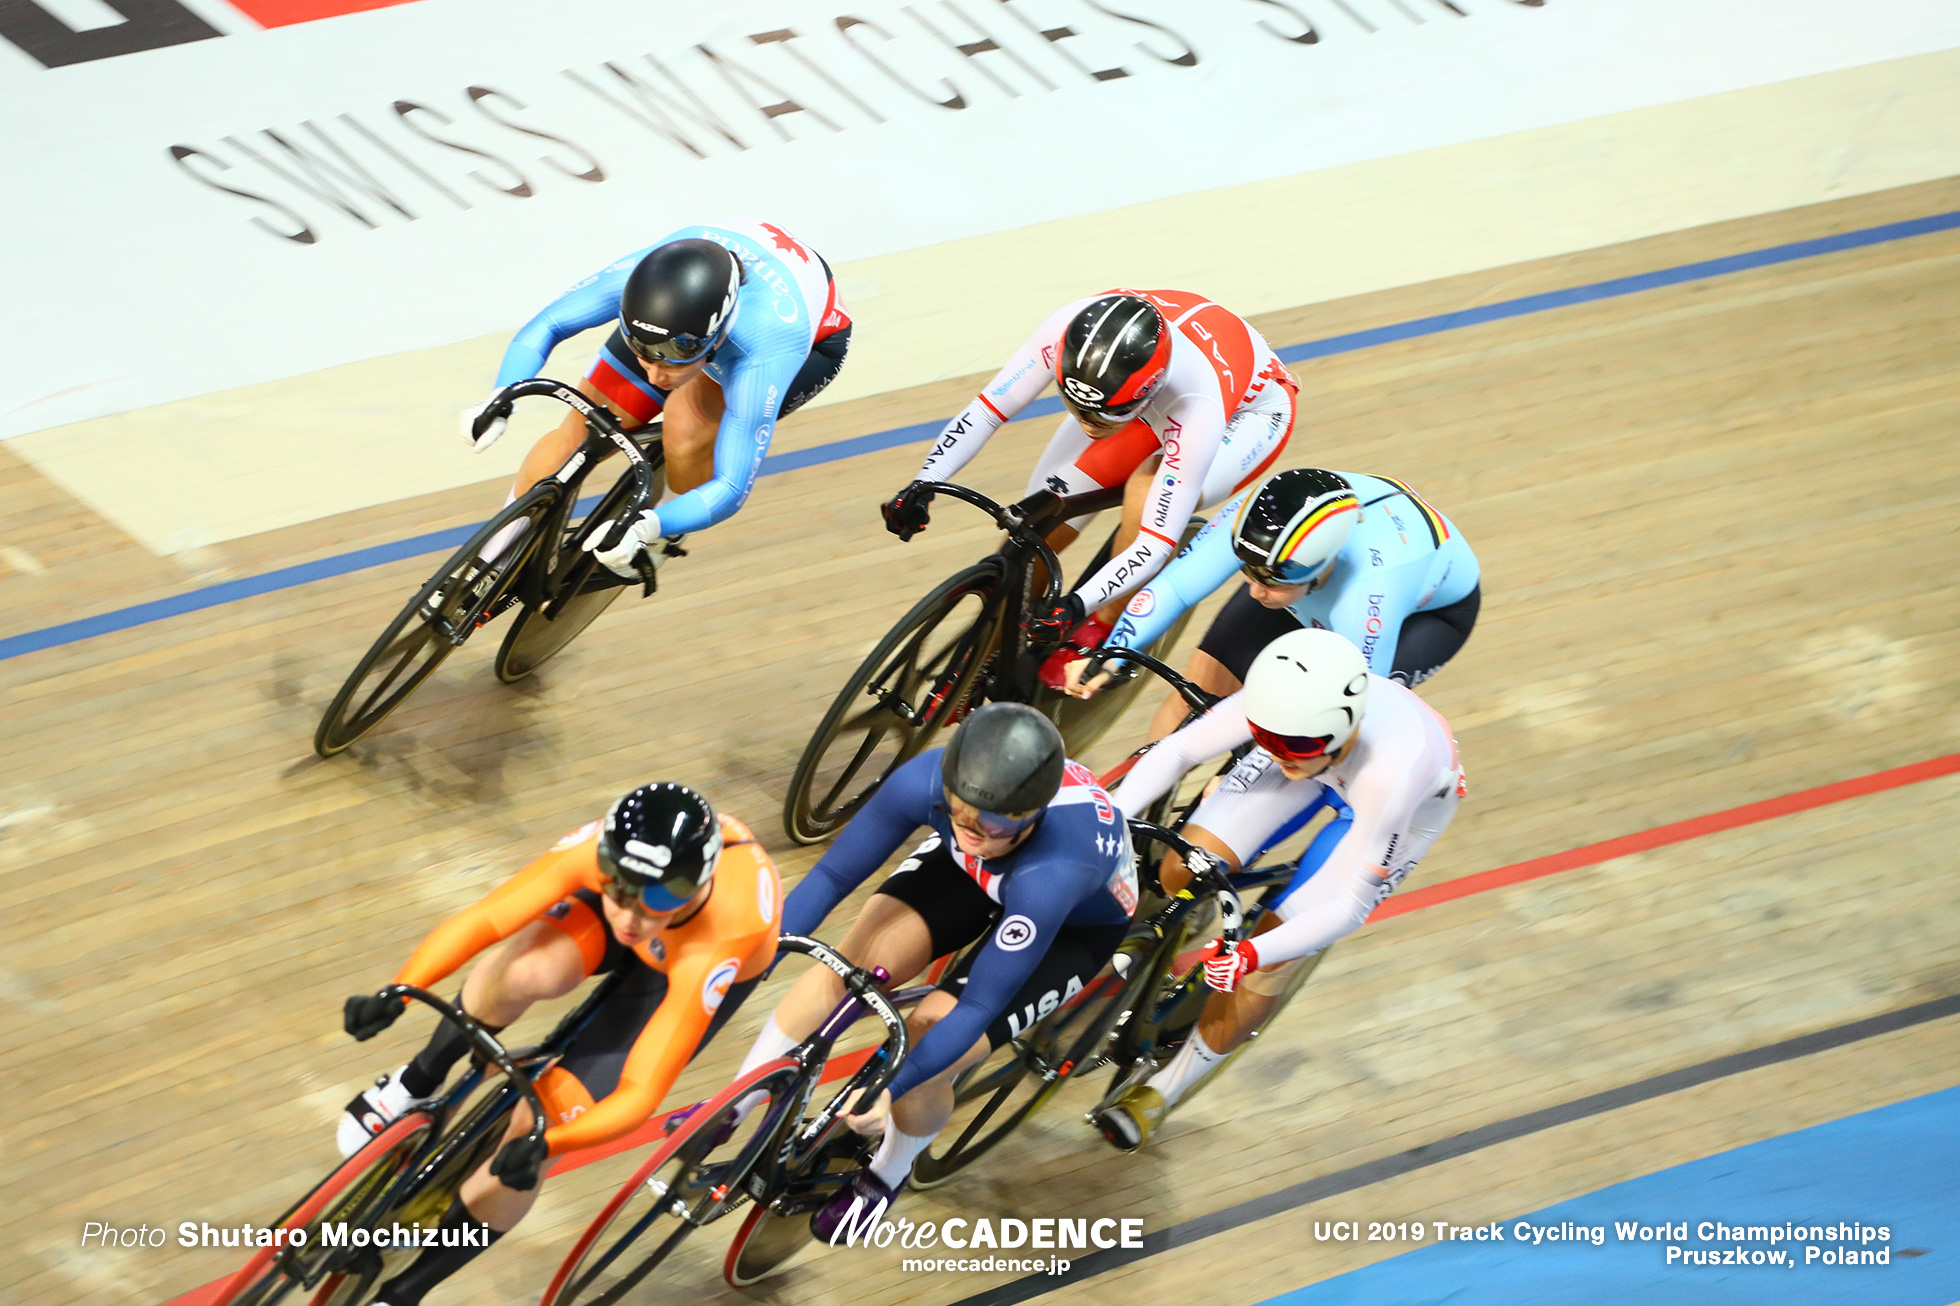 Women's Keirin Quarterfinals / 2019 Track Cycling World Championships Pruszków, Poland